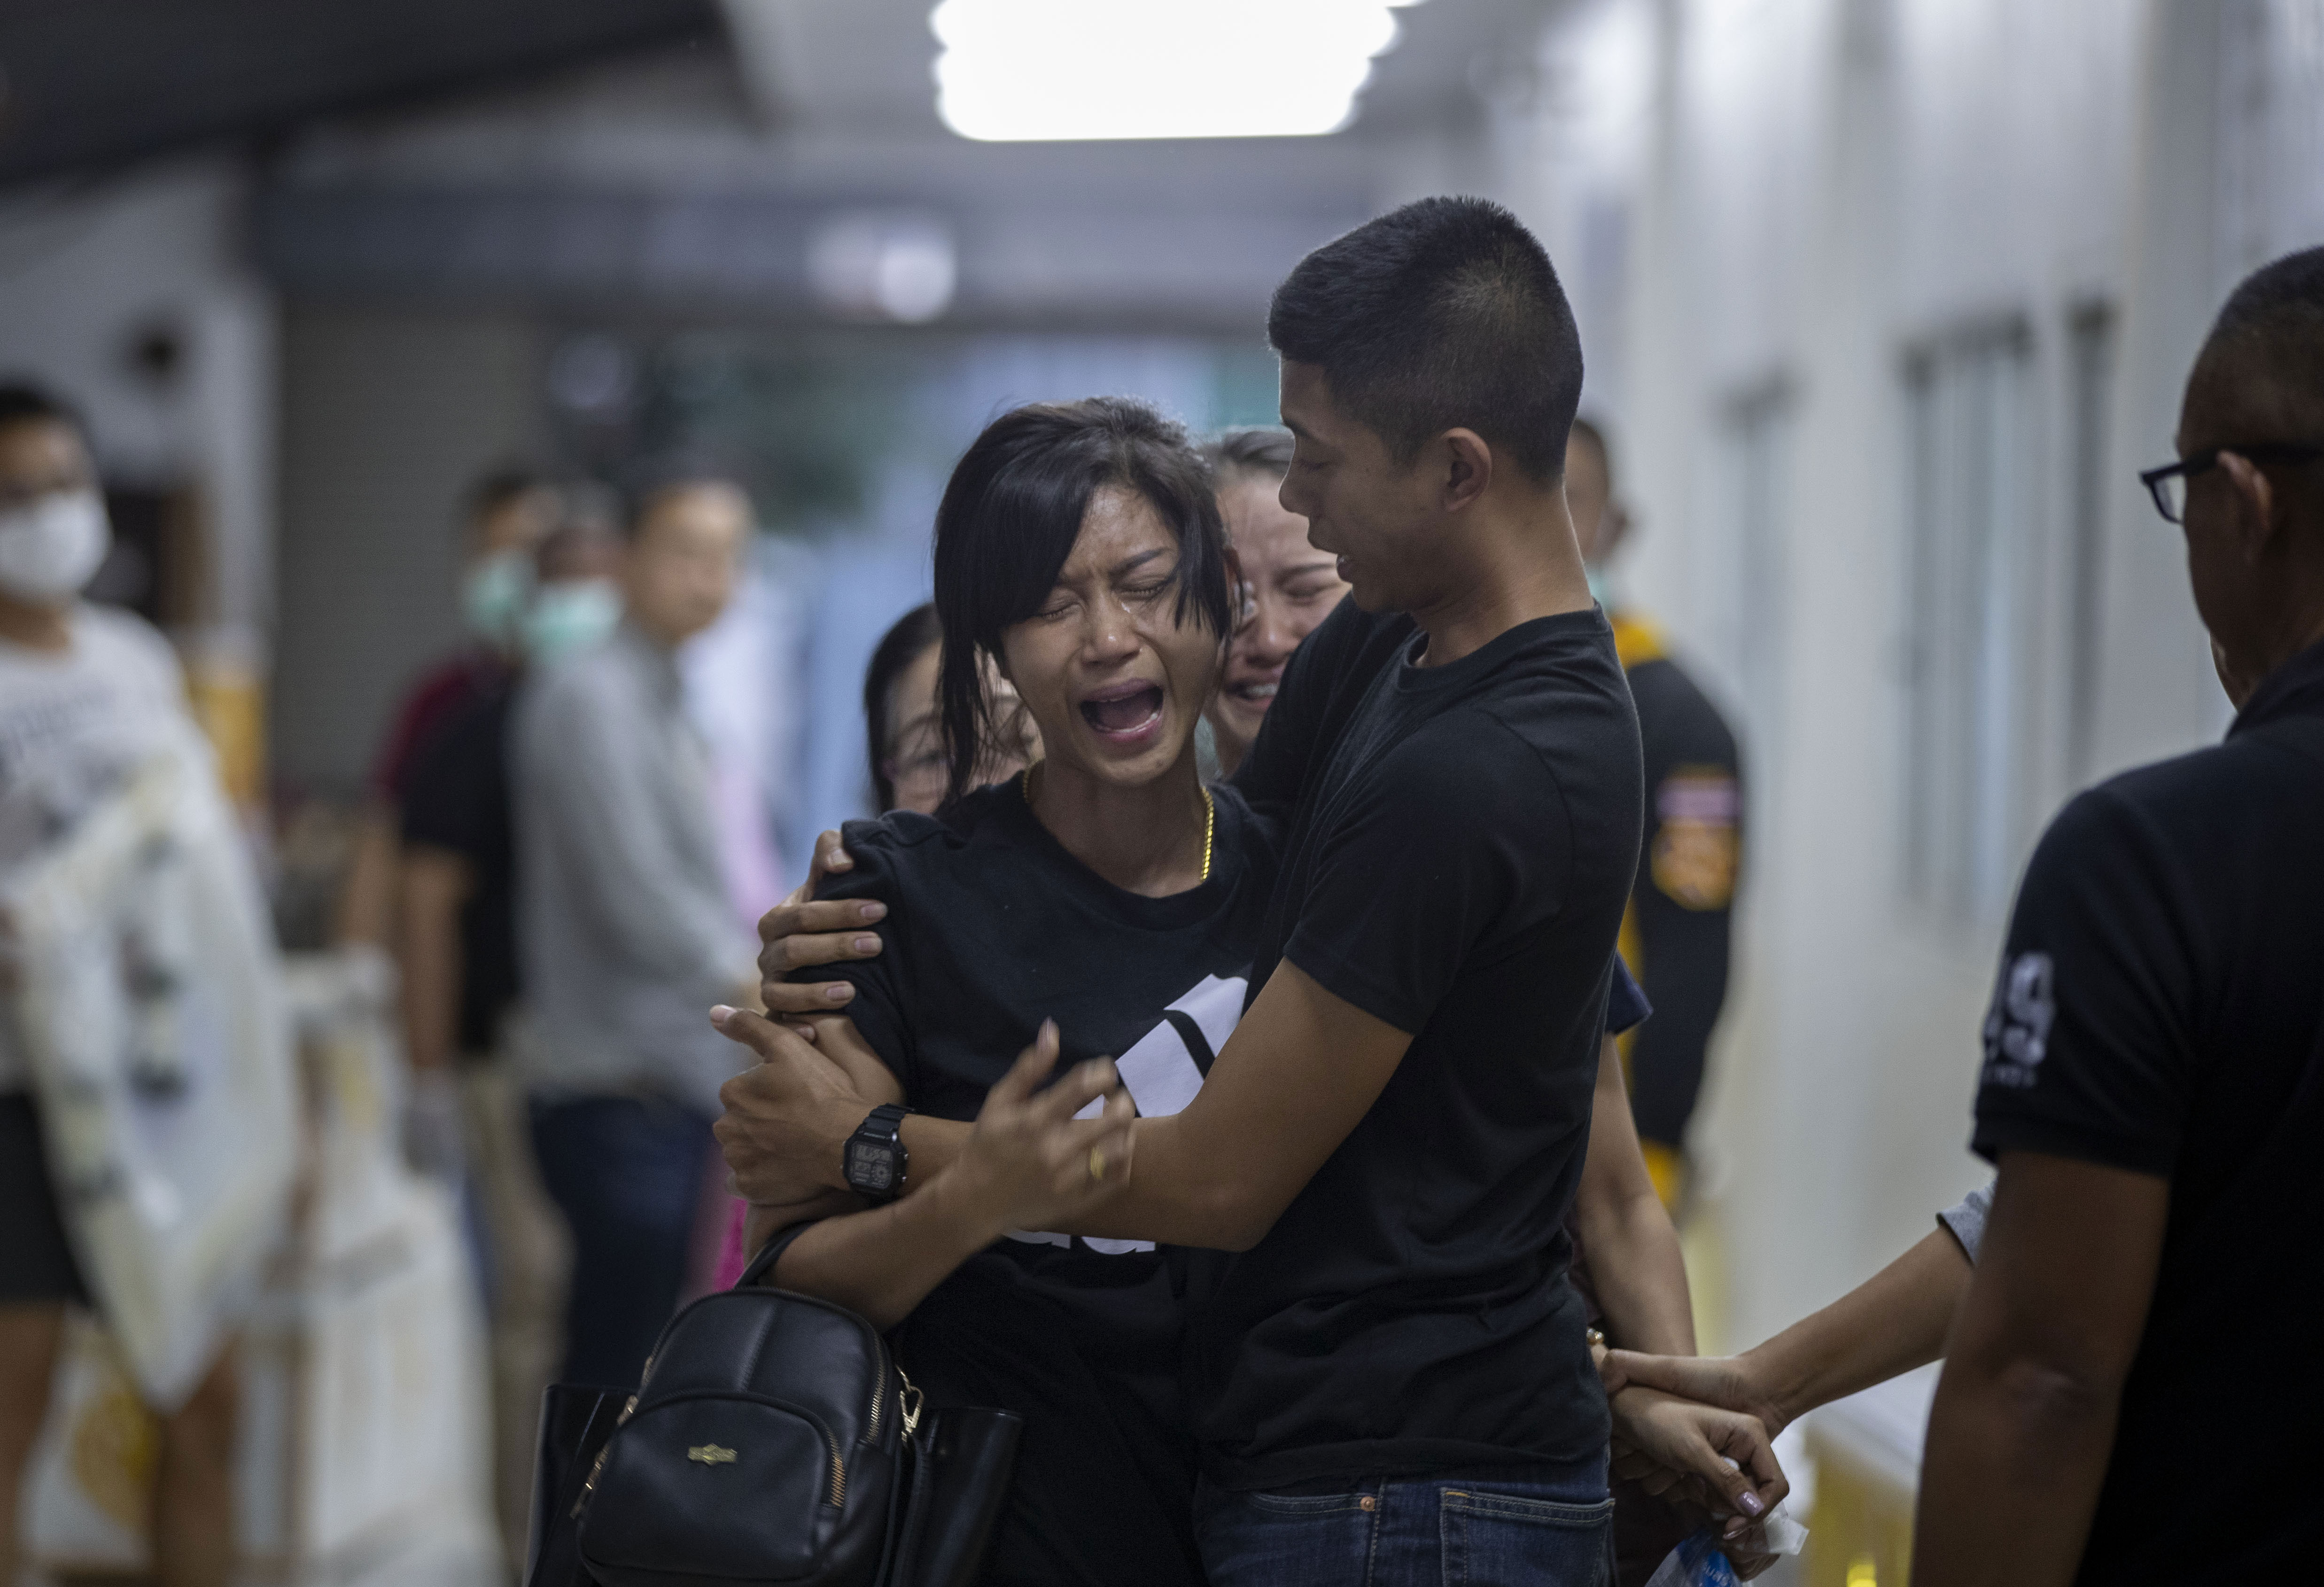 Relatives of a victim of a mass shooting react after visiting a morgue, in Korat, Nakhon Ratchasima, Thailand